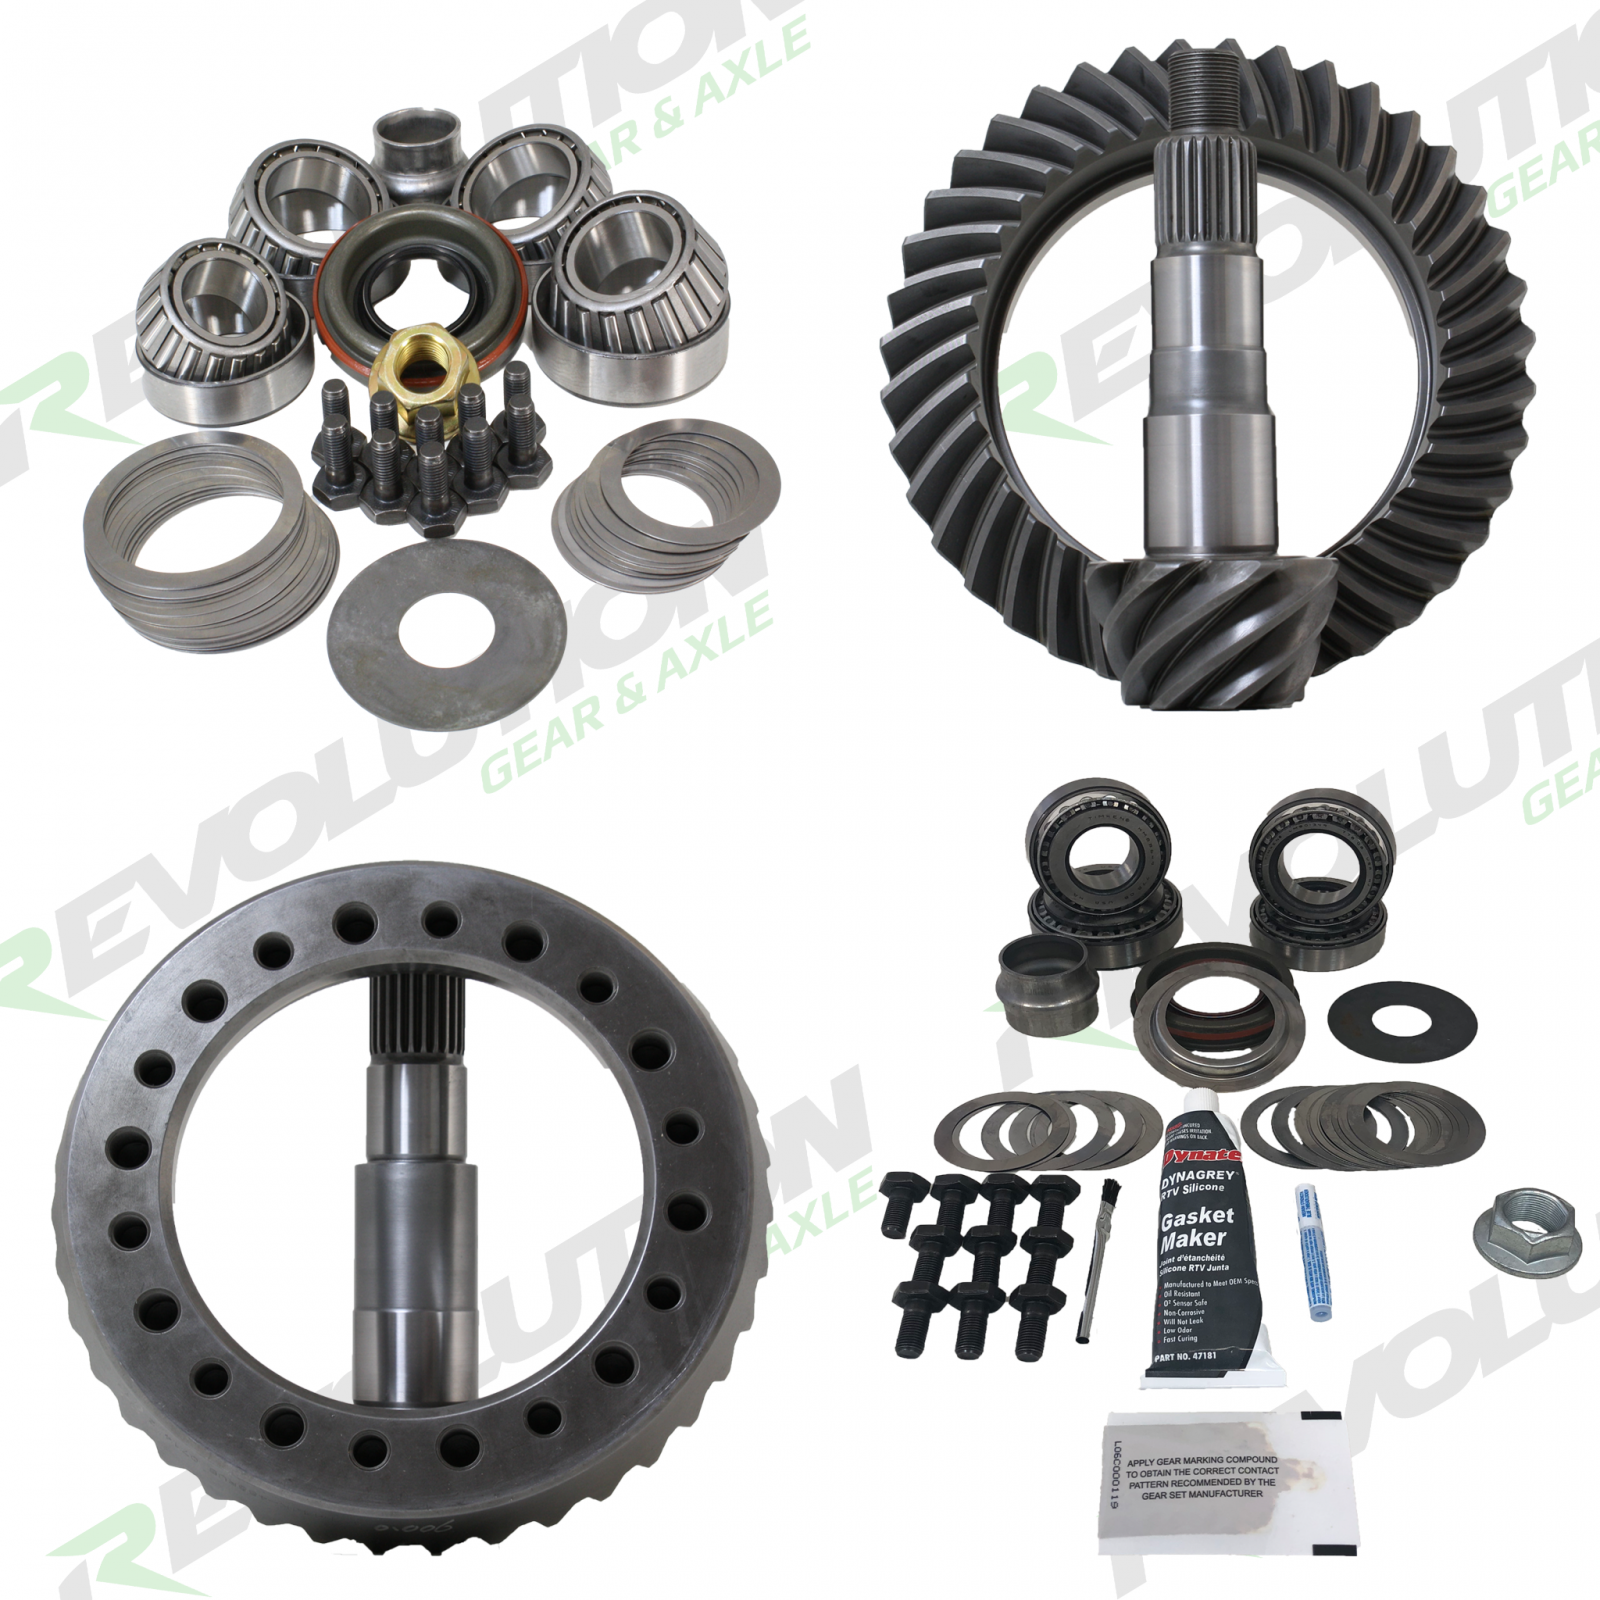 JK Non-Rubicon 4.56 Ratio Gear Package (D44-D30) with Timken Bearings (Front Carrier Required When Upgrading From Factory 3.21  Ratio Only) Revolution Gear and Axle - HQ Offroad